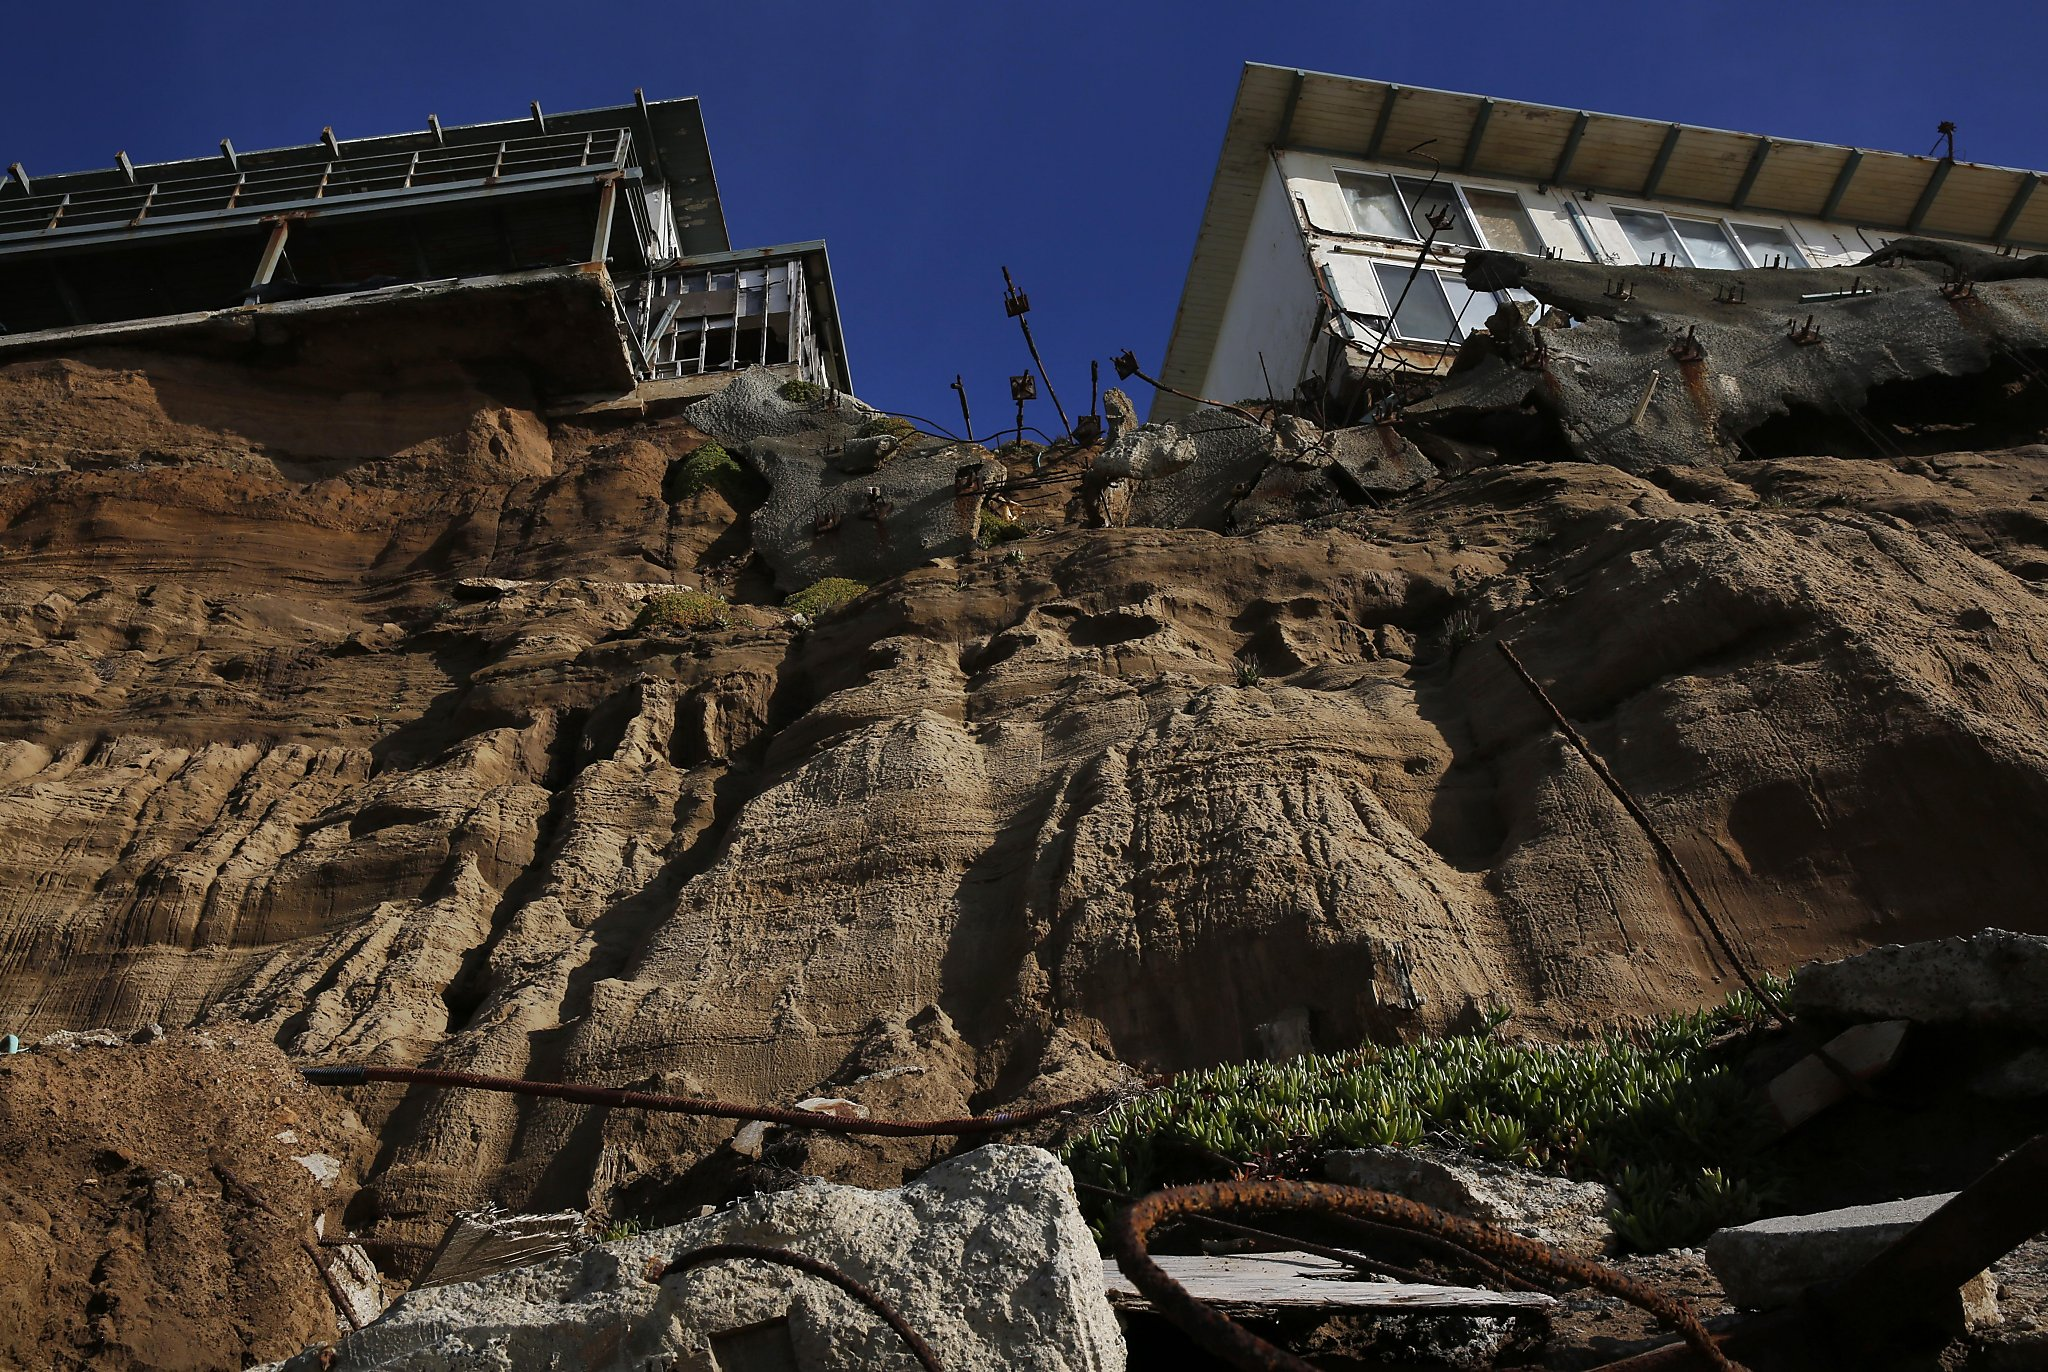 Perilous cliffhangers of pacifica tell a cautionary tale for Pacifica house